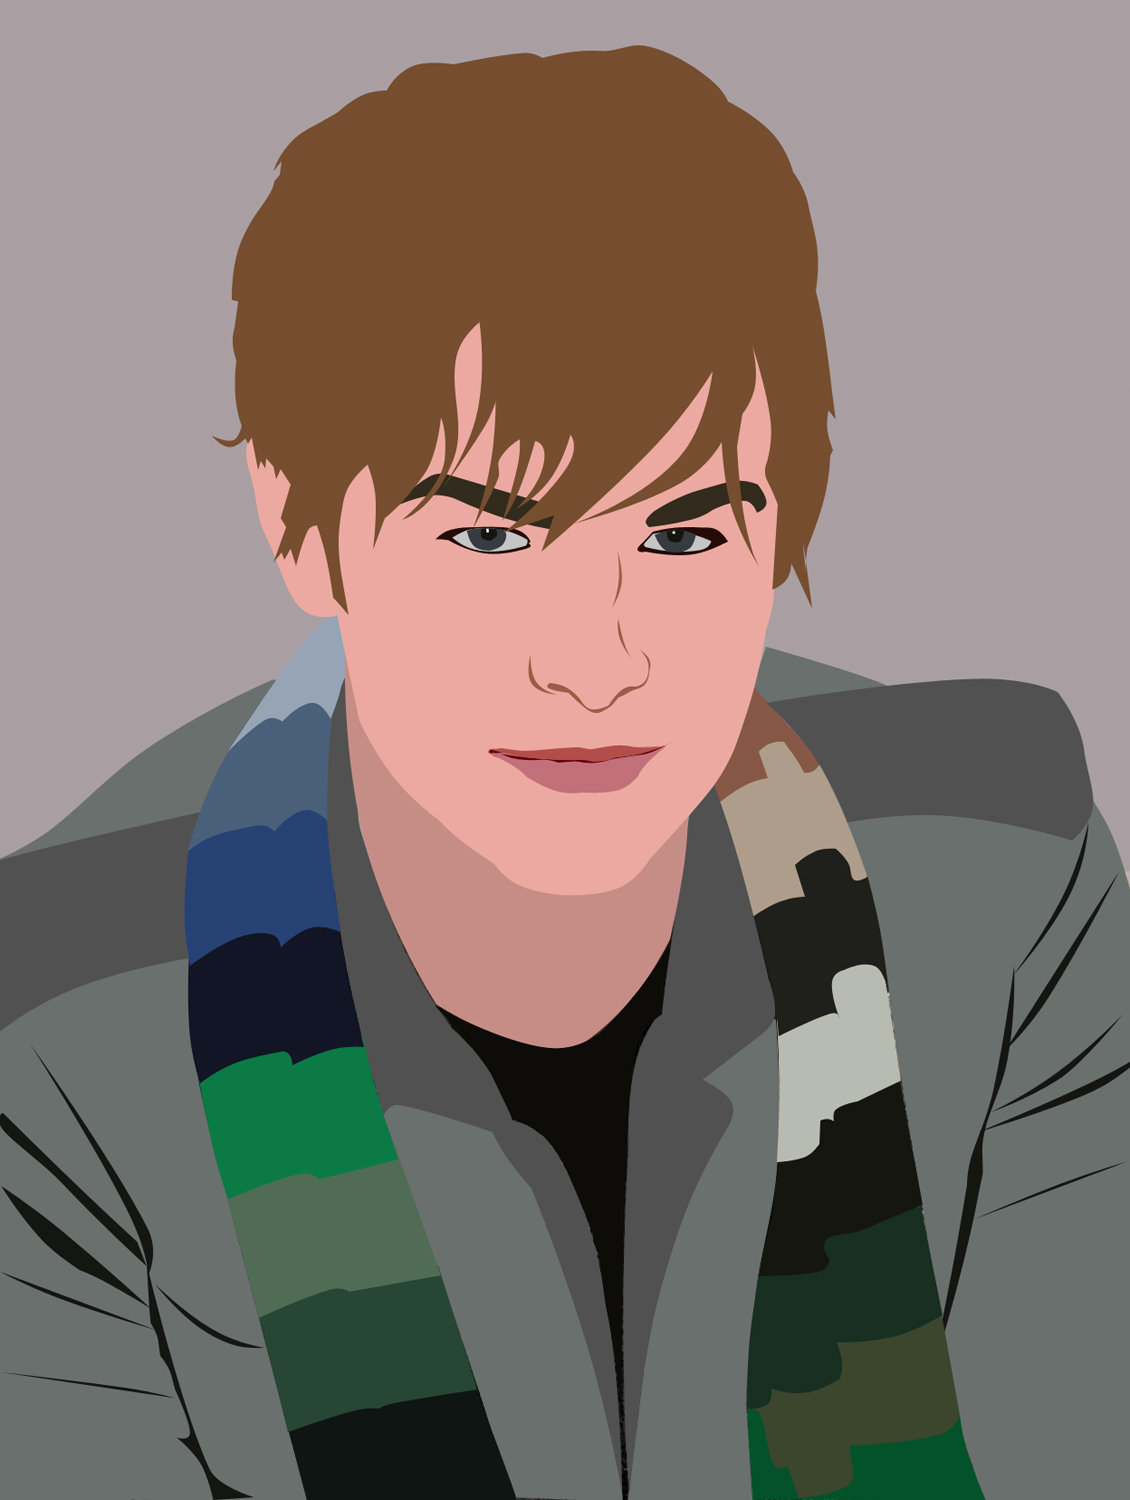 Cartoon pictures of chace crawford -  Robot Chicken John Connor Male Man Actor American Celebrity Cartoon Pictures Celebrity Cartoon Images Cartoon And Caricature Gallery